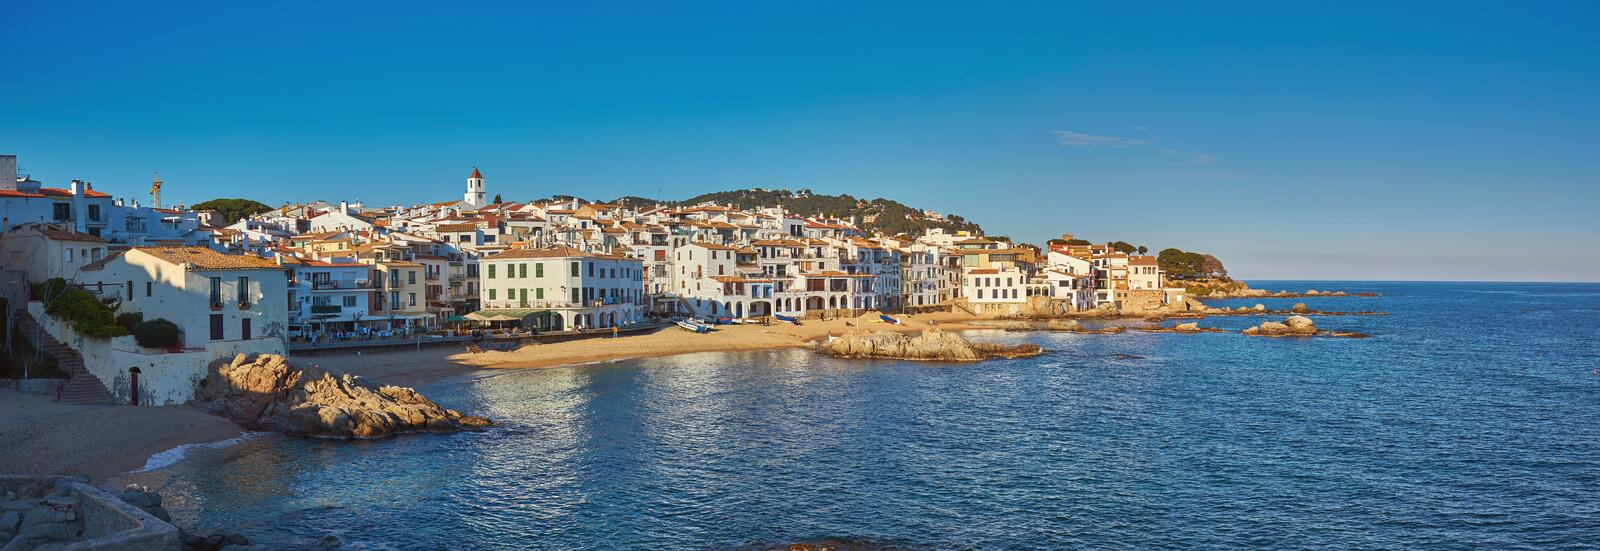 Picturesque landscape from a small Spanish village in Costa Brava coastal, Calella de Palafrugell.  royalty free stock photos